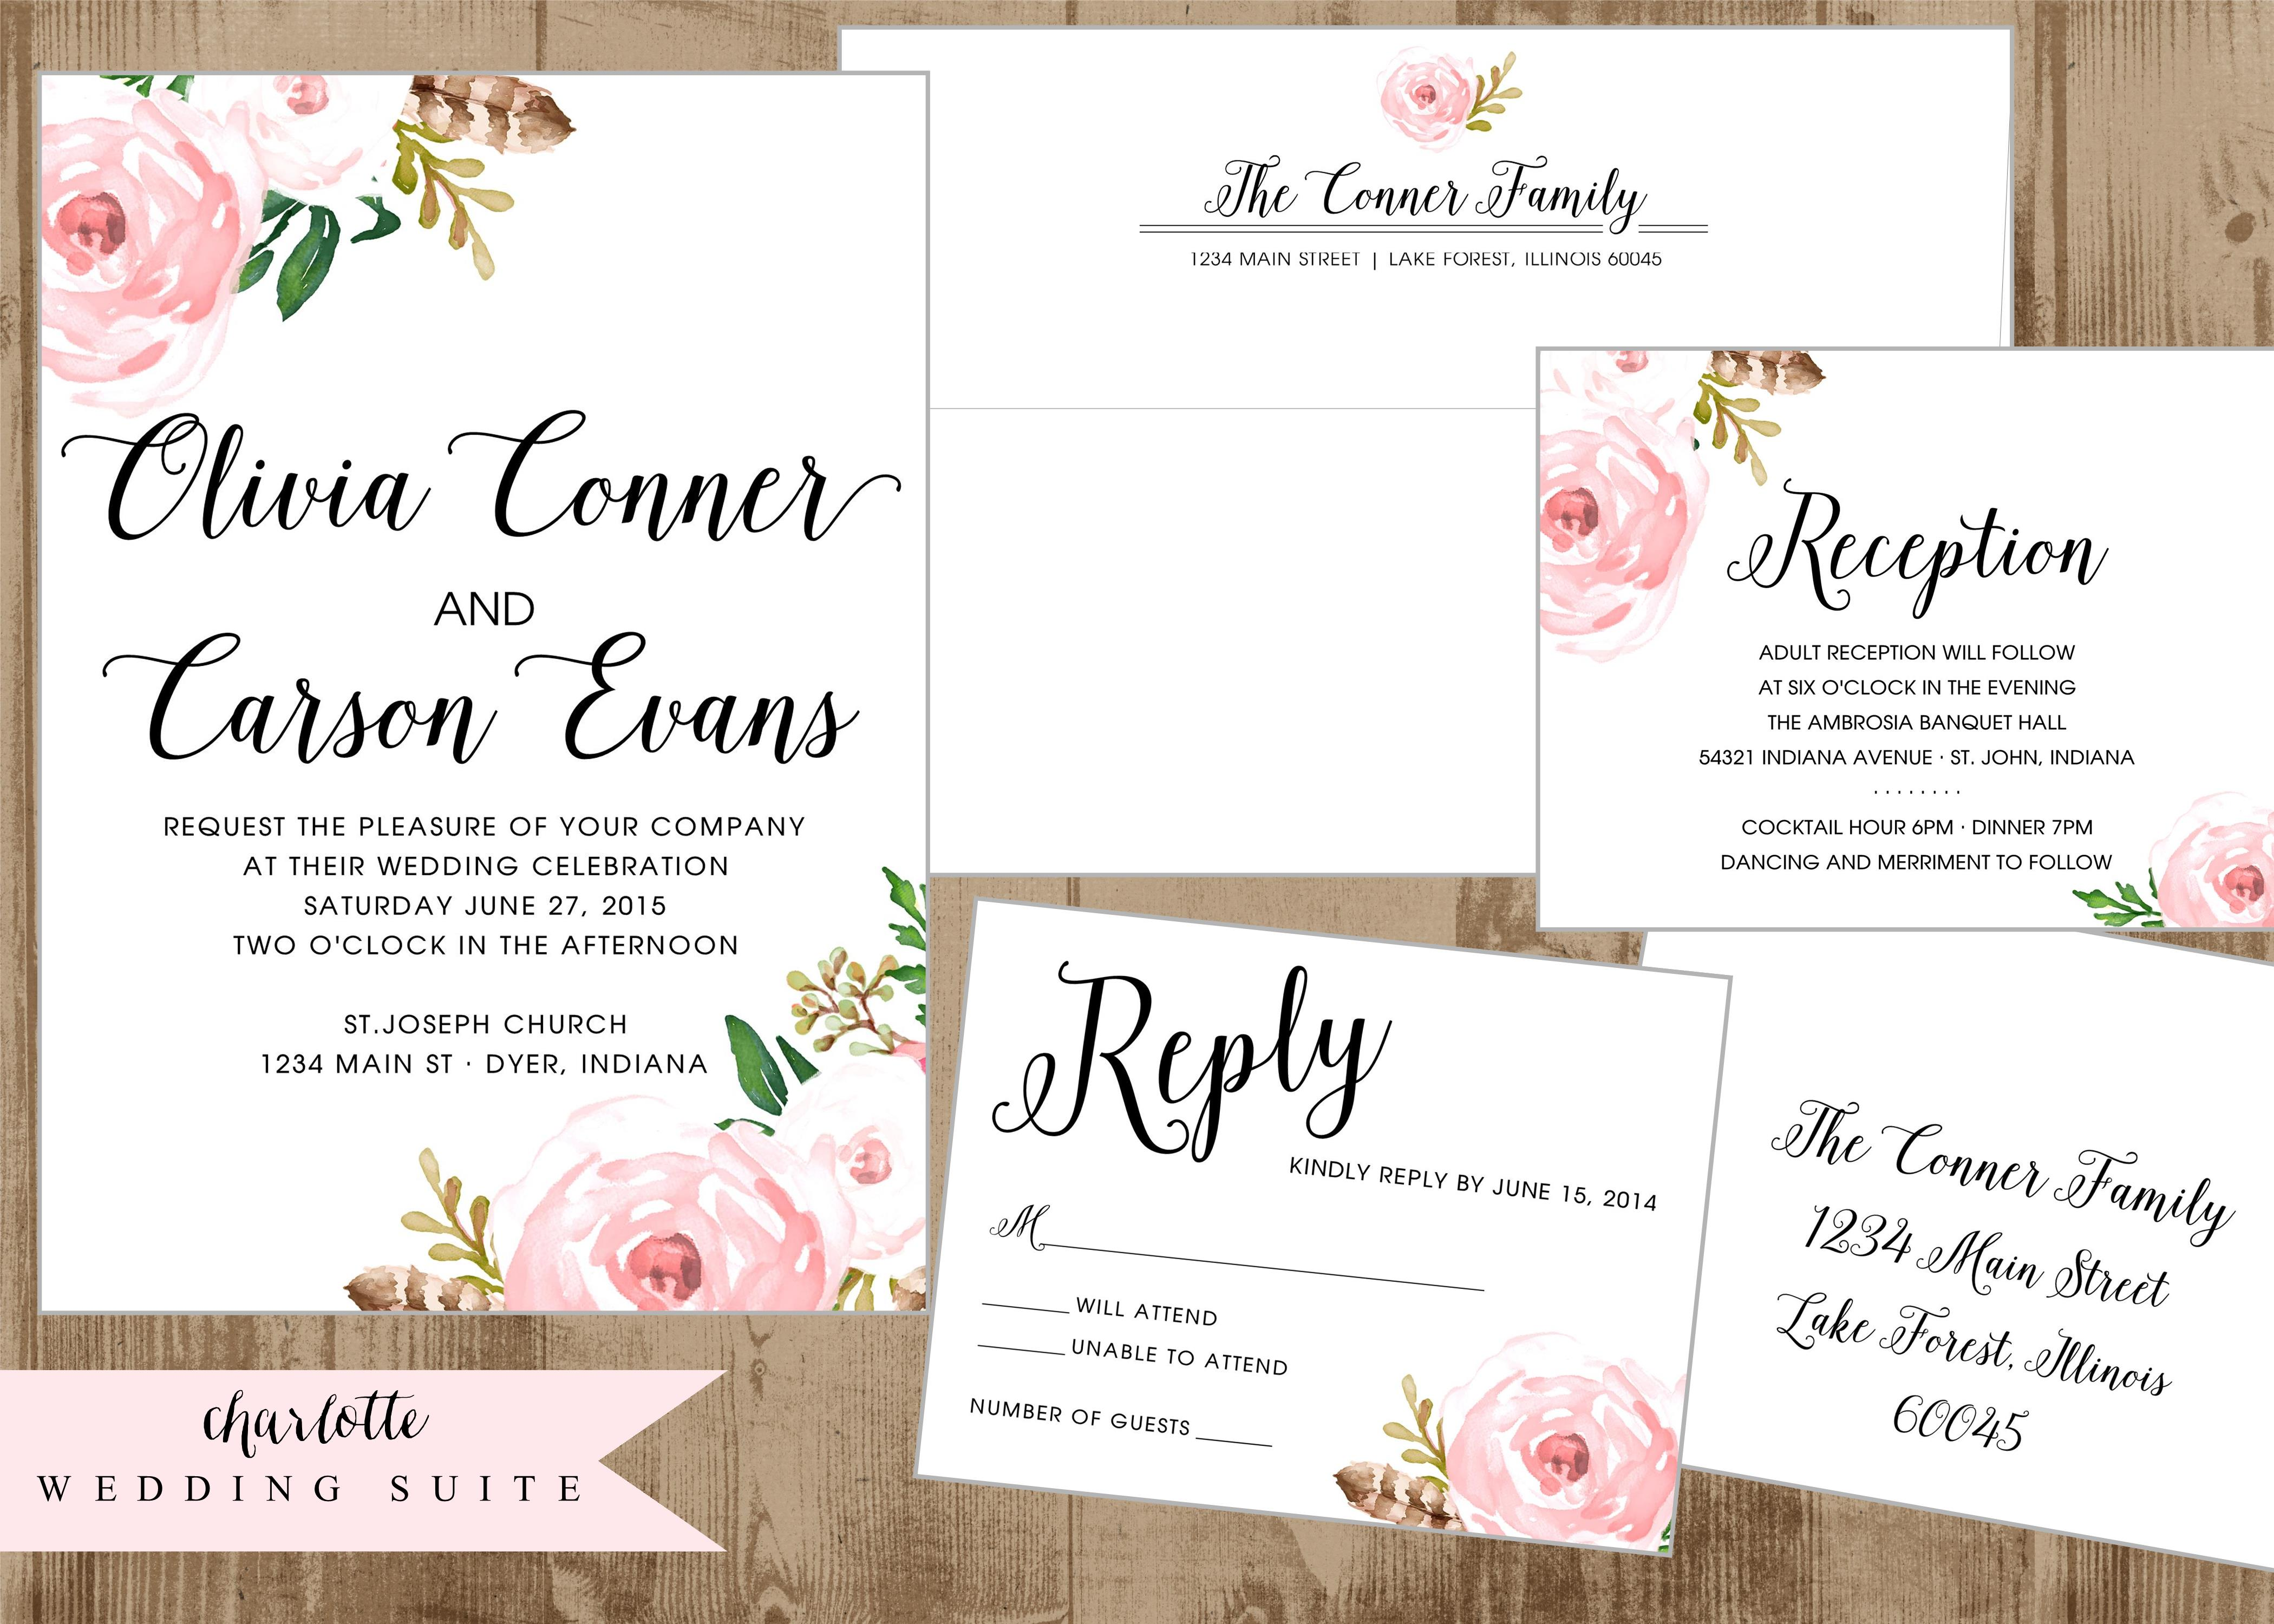 blush mint and gold wedding invitations blush wedding invitations printable wedding invitation suite with vintage pink flowers